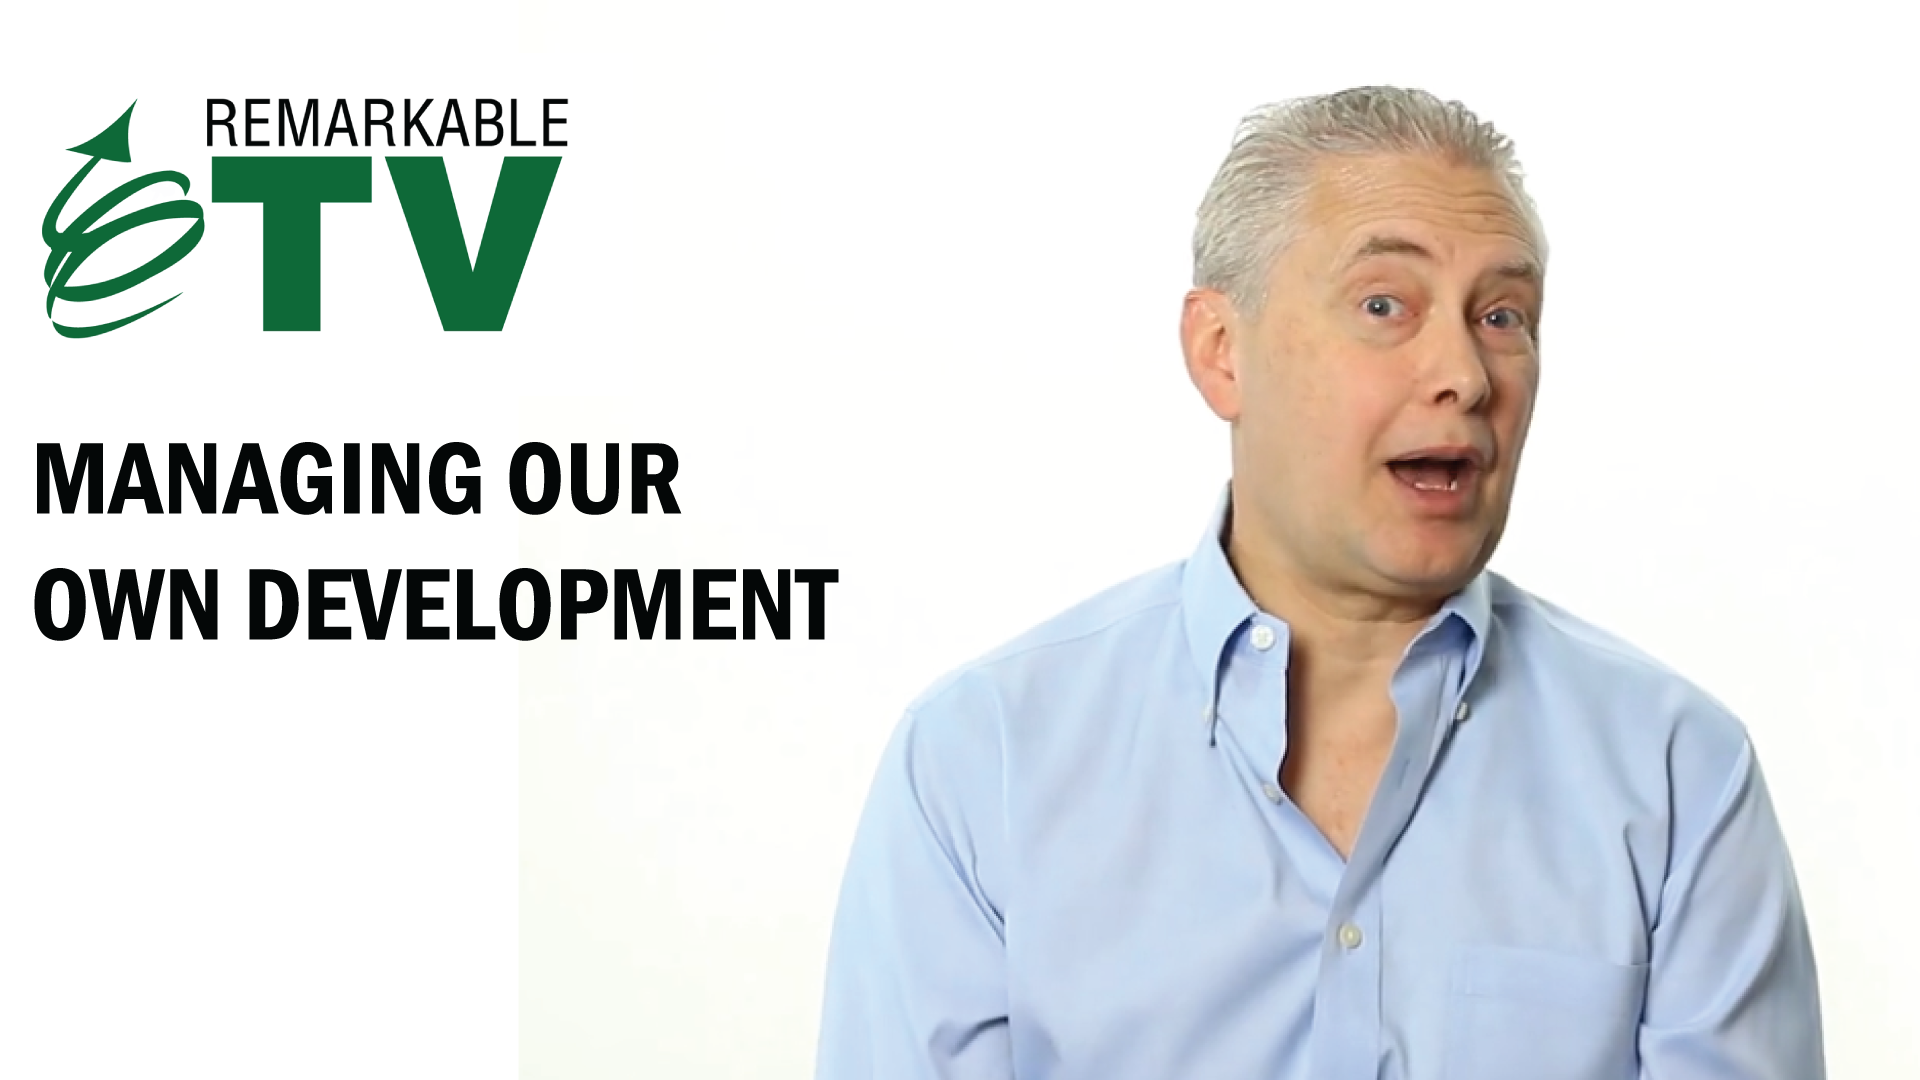 Managing Our Own Development - a Remarkable TV episode from Kevin Eikenberry